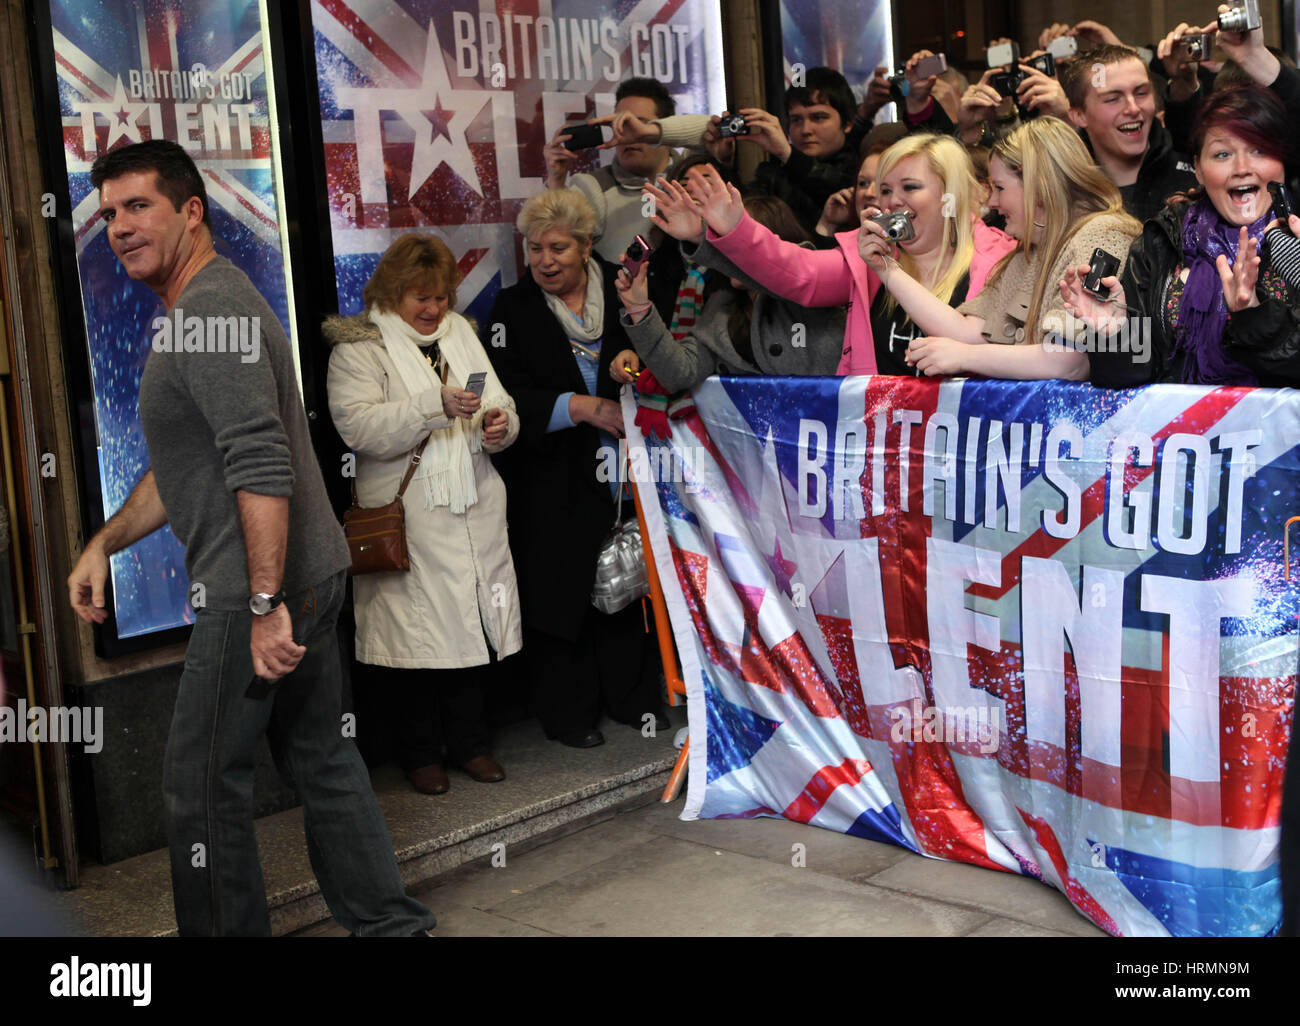 Britain Got Talent Castings an der Manchester Opera House. Januar 2010. Simon Cowell kommt Stockbild